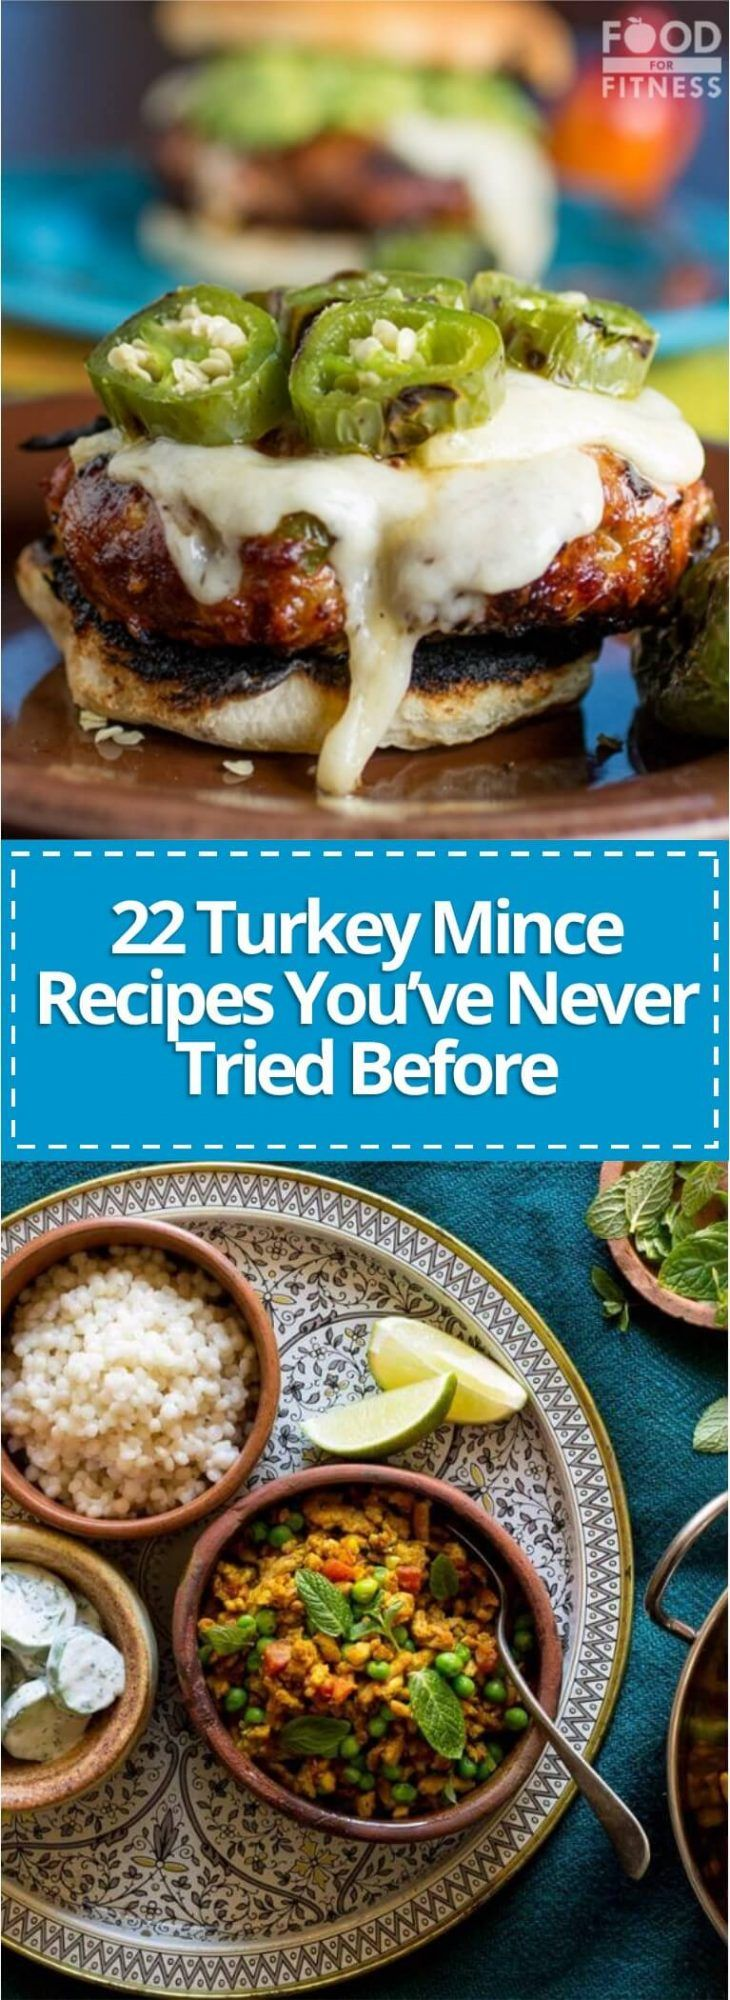 22 Turkey Mince Recipes You've Never Tried Before | # ...